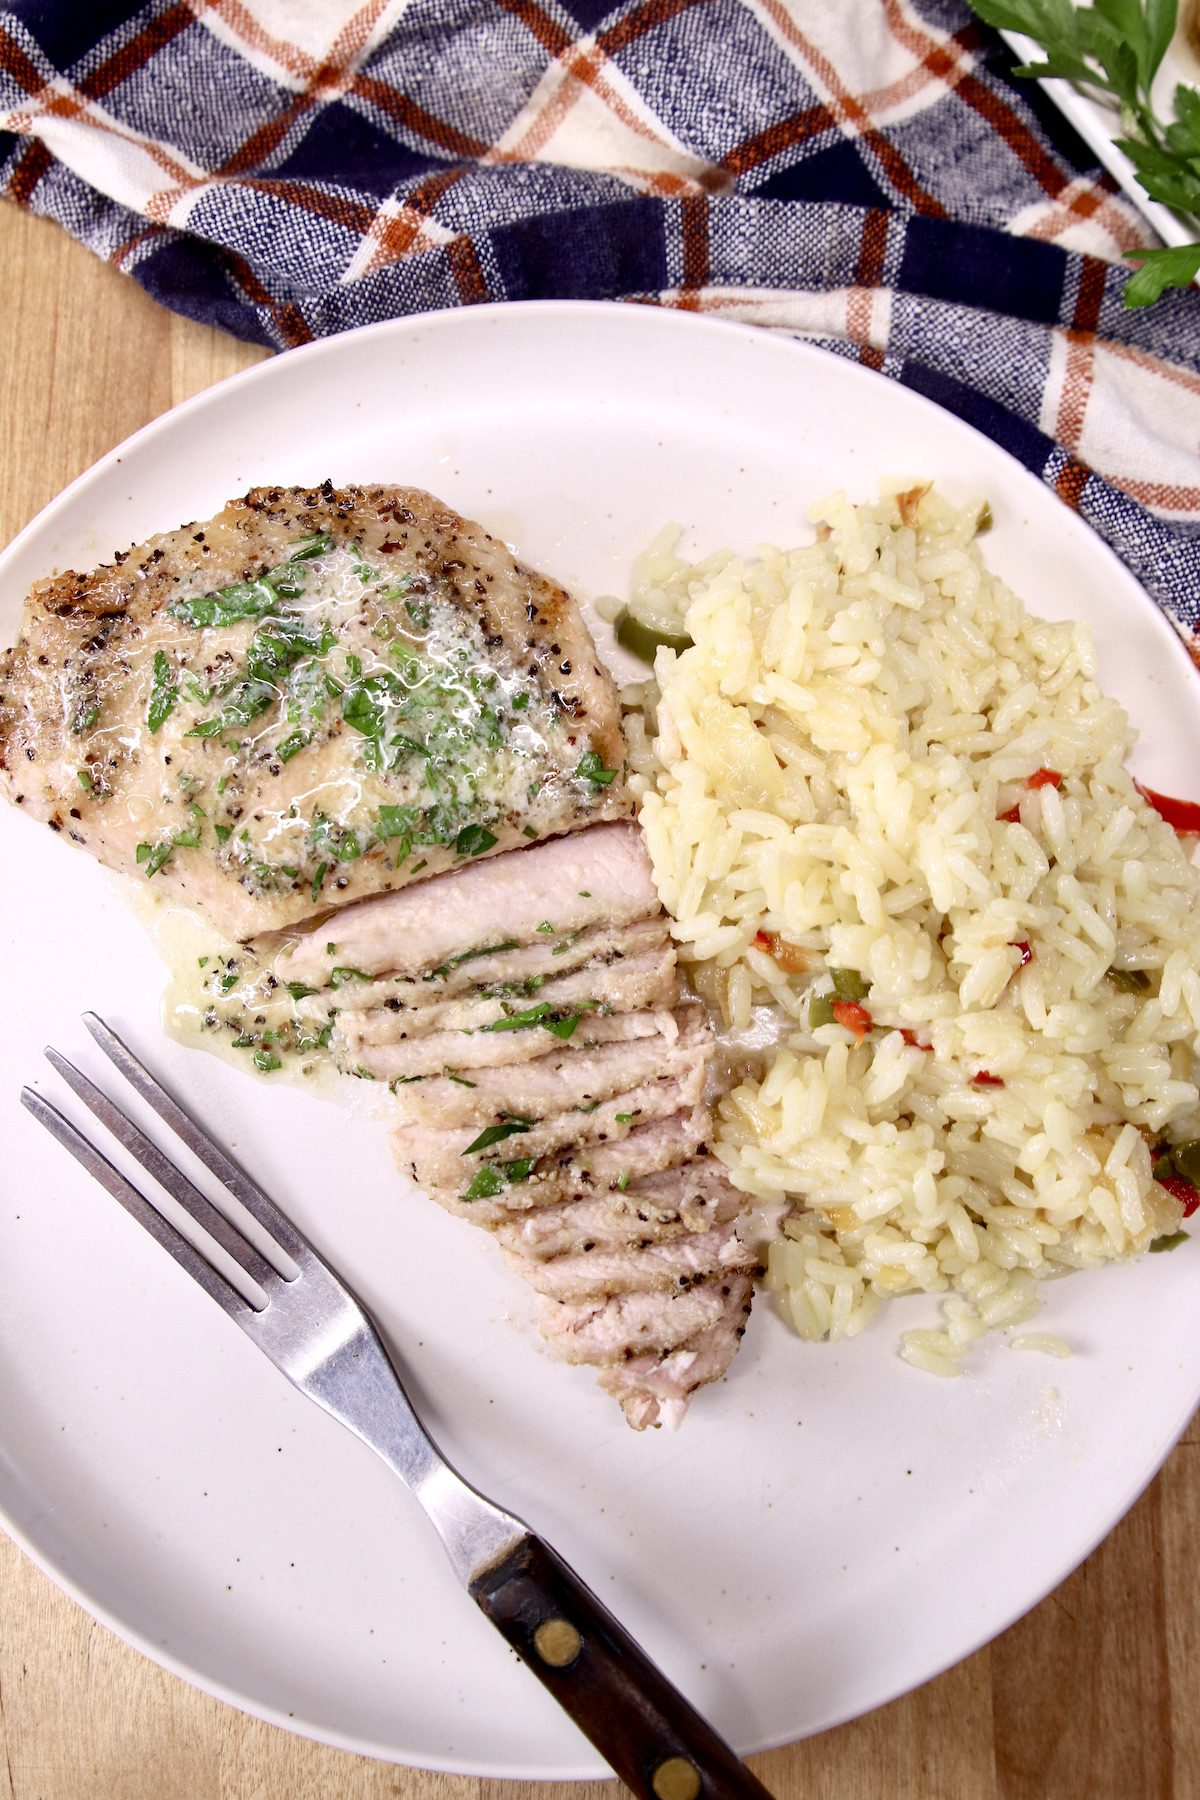 garlic butter pork chop on a plate, partially sliced with rice pilaf